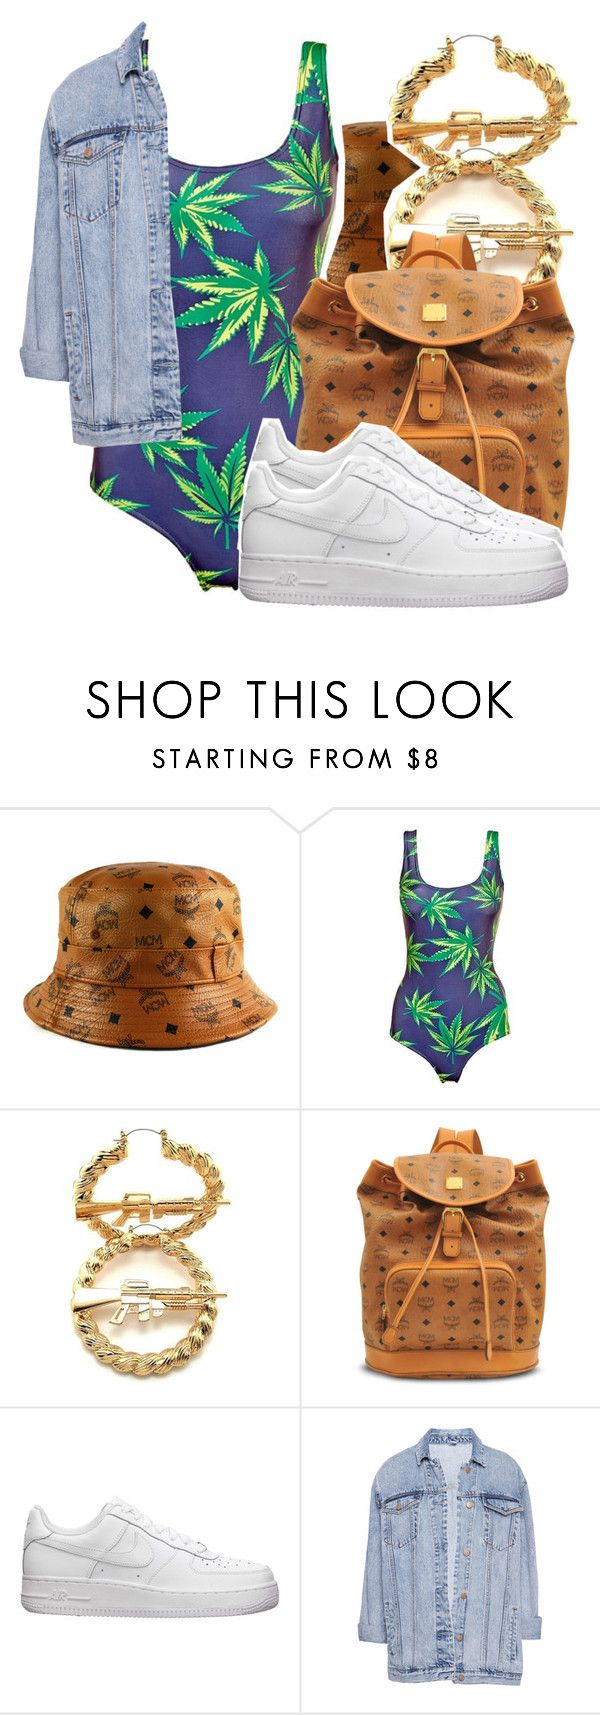 """""""1121"""" by ashley-mundoe ❤ liked on Polyvore featuring MCM, RIFLE, NIKE and Pull&Bear"""